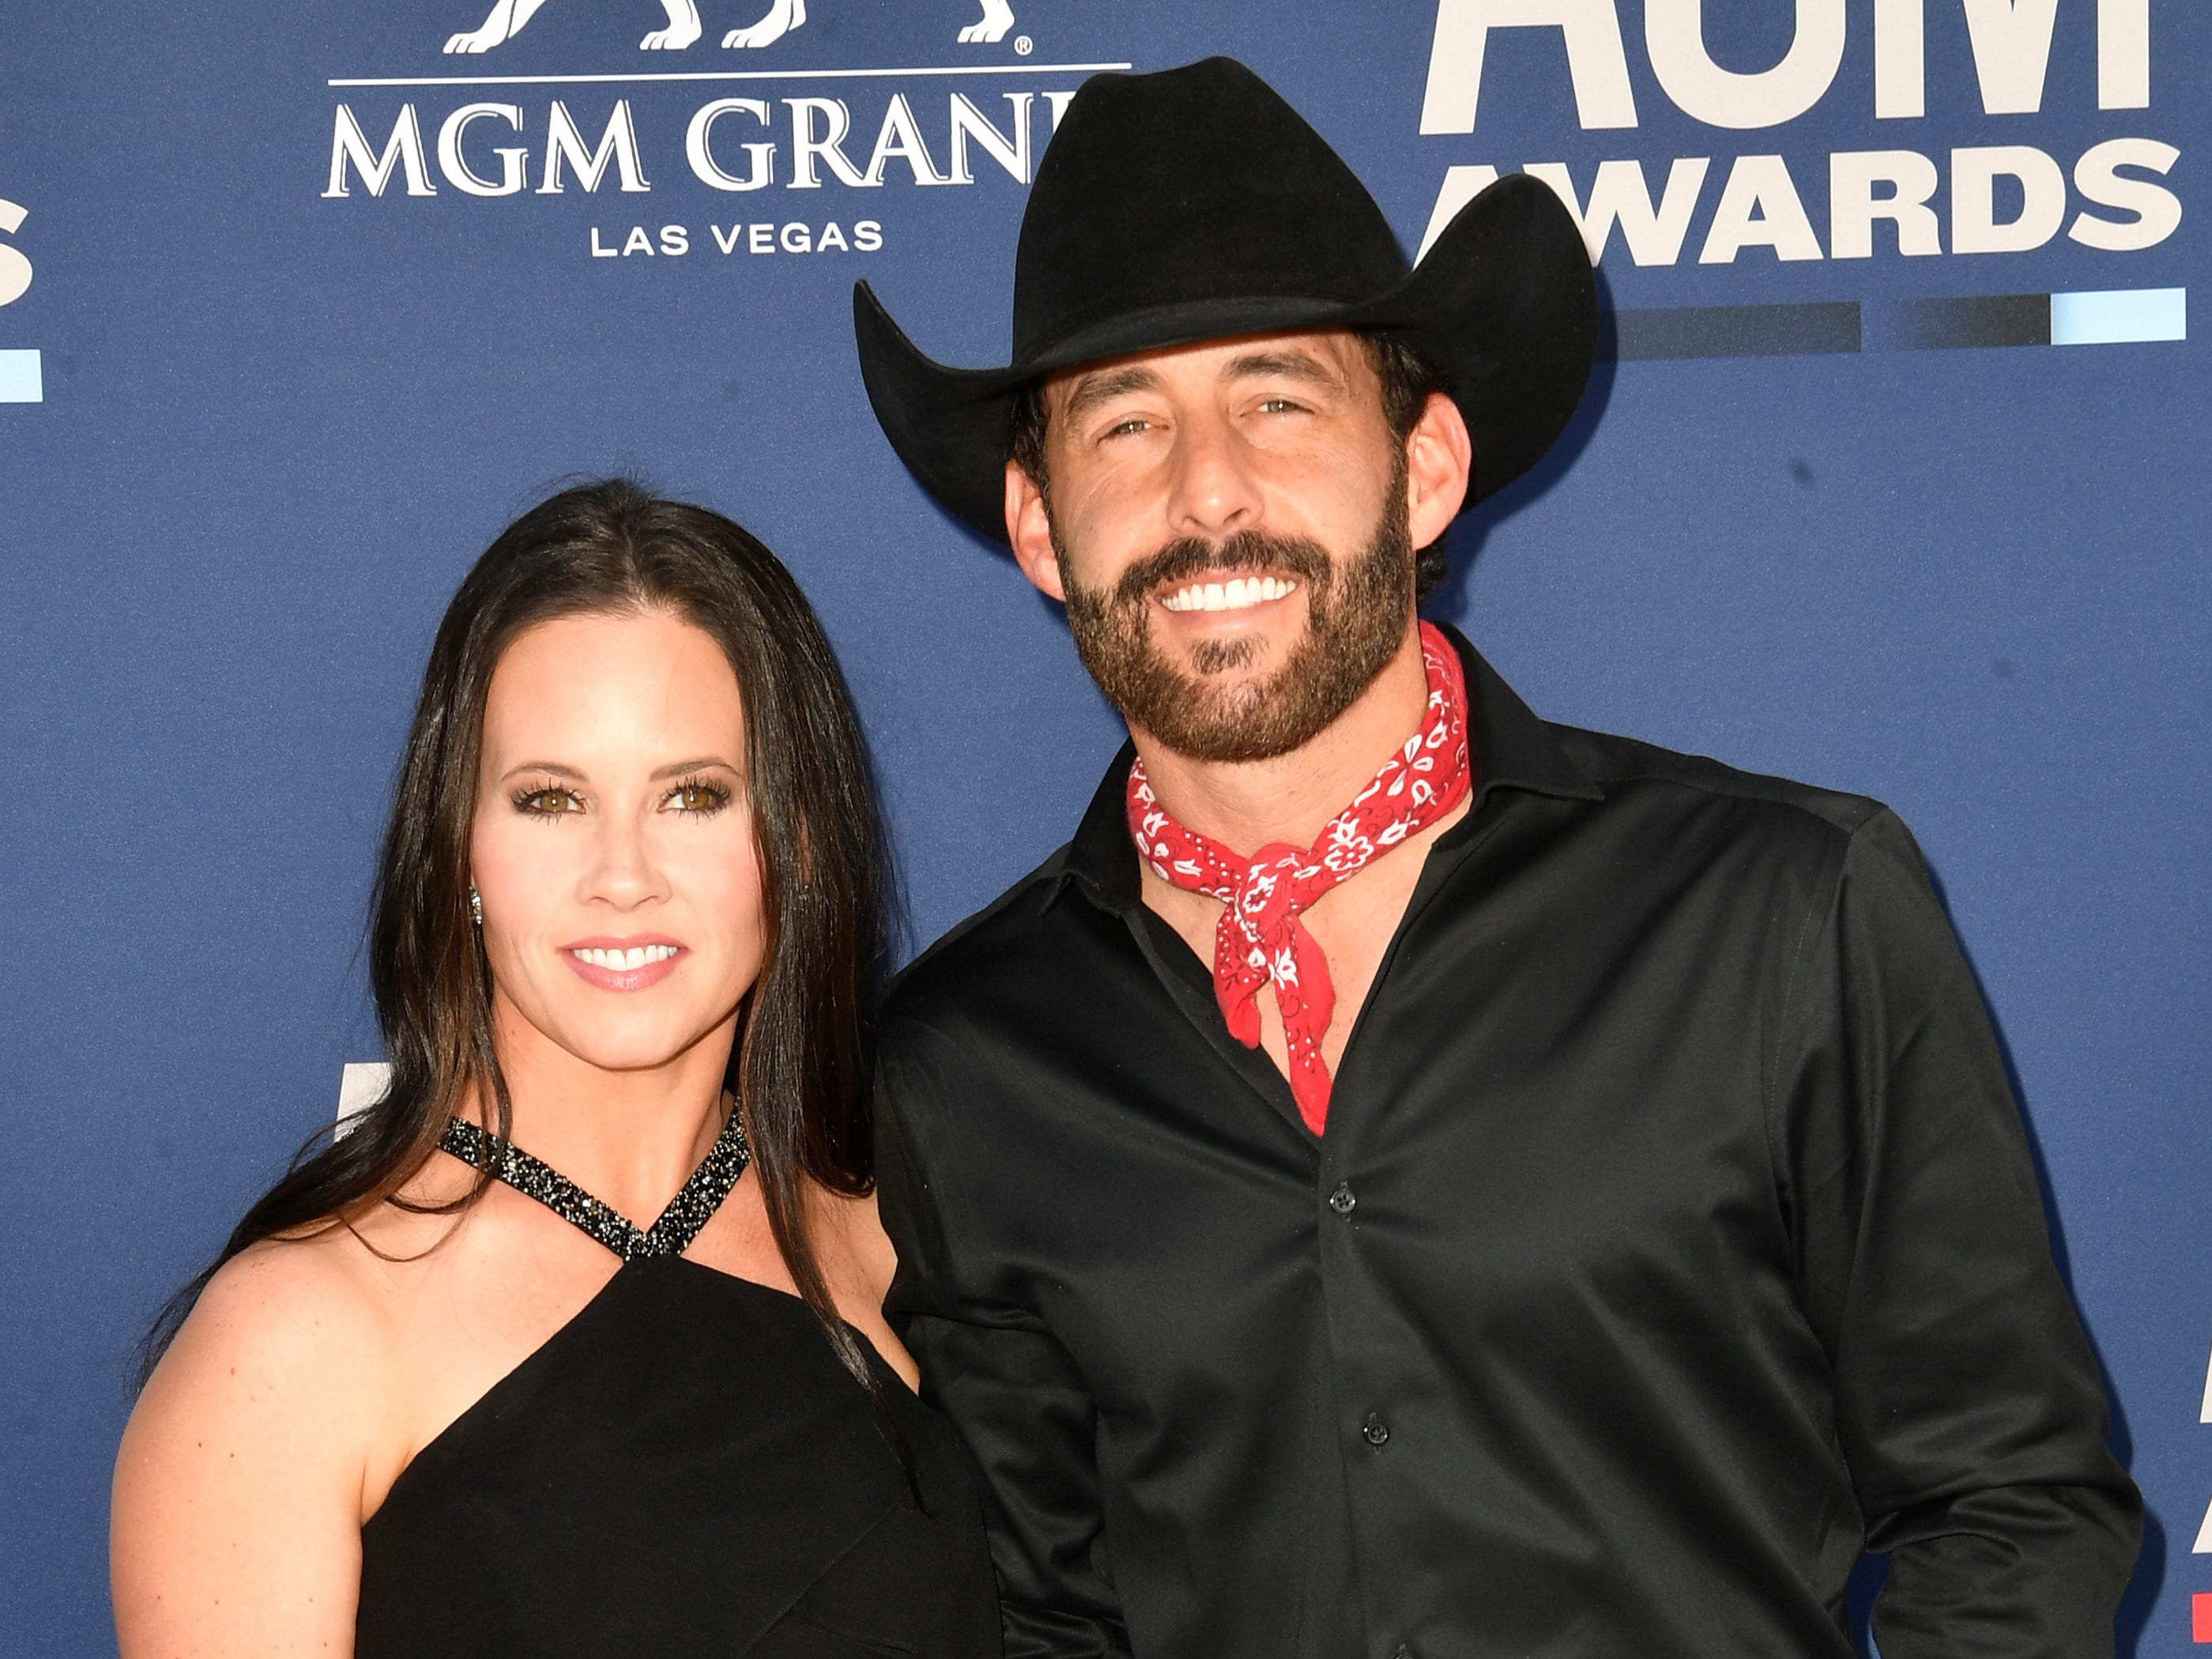 Aaron Watson, right, and his wife Kim Watson walk the red carpet at the 54TH Academy of Country Music Awards Sunday, April 7, 2019, in Las Vegas, Nev.